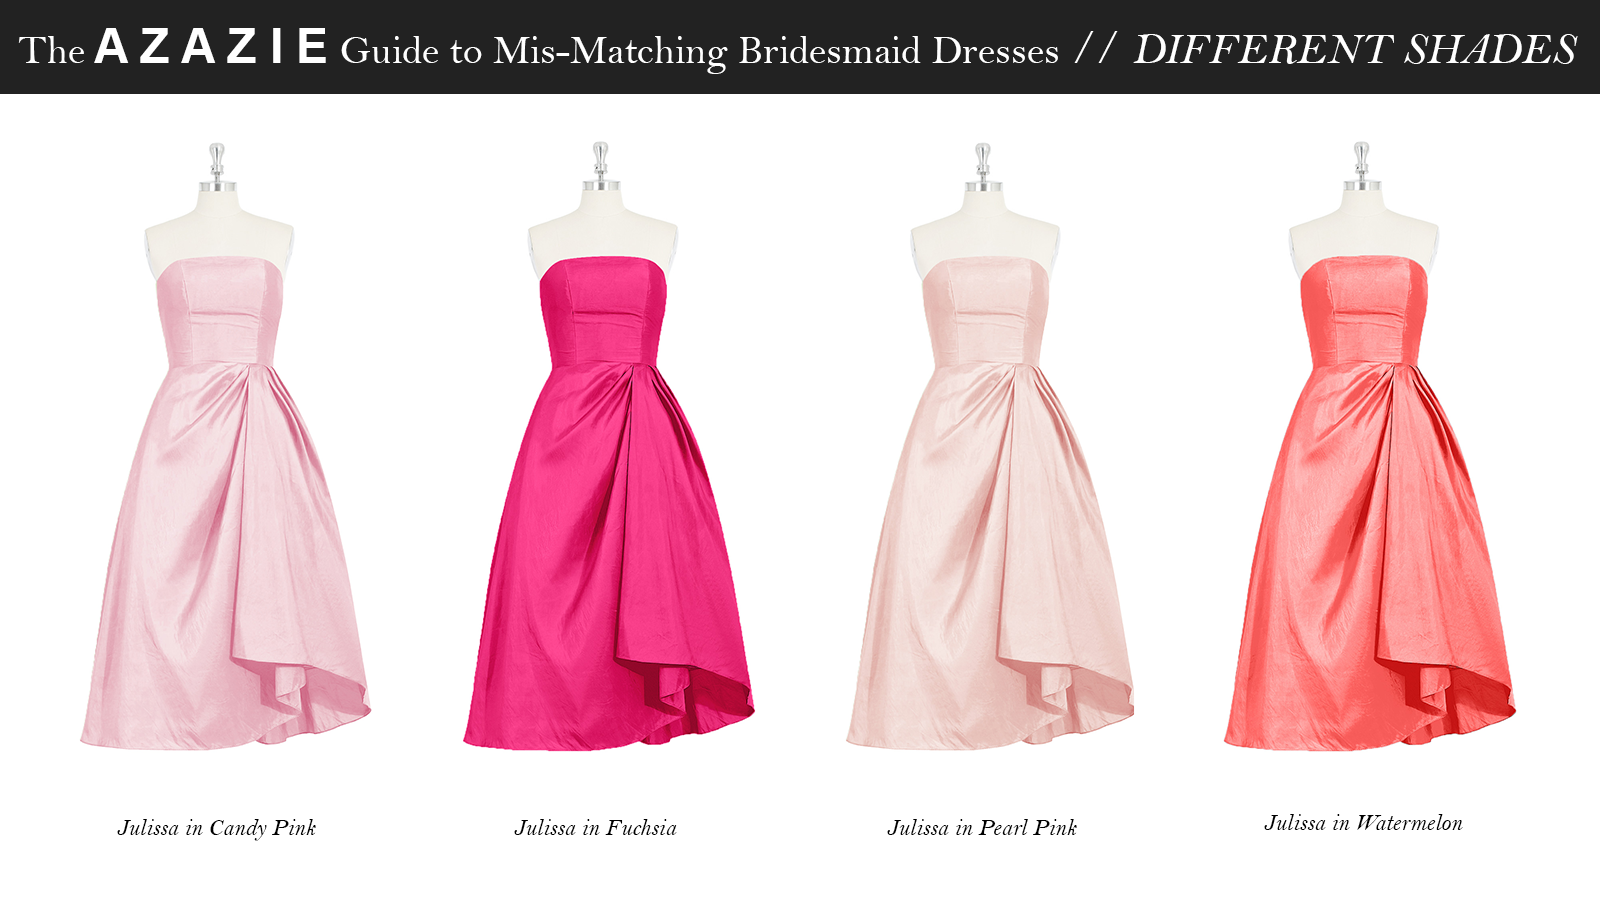 AZAZIE_Guide_MisMatching_Bridesmaid_Dresses_Different_Shades